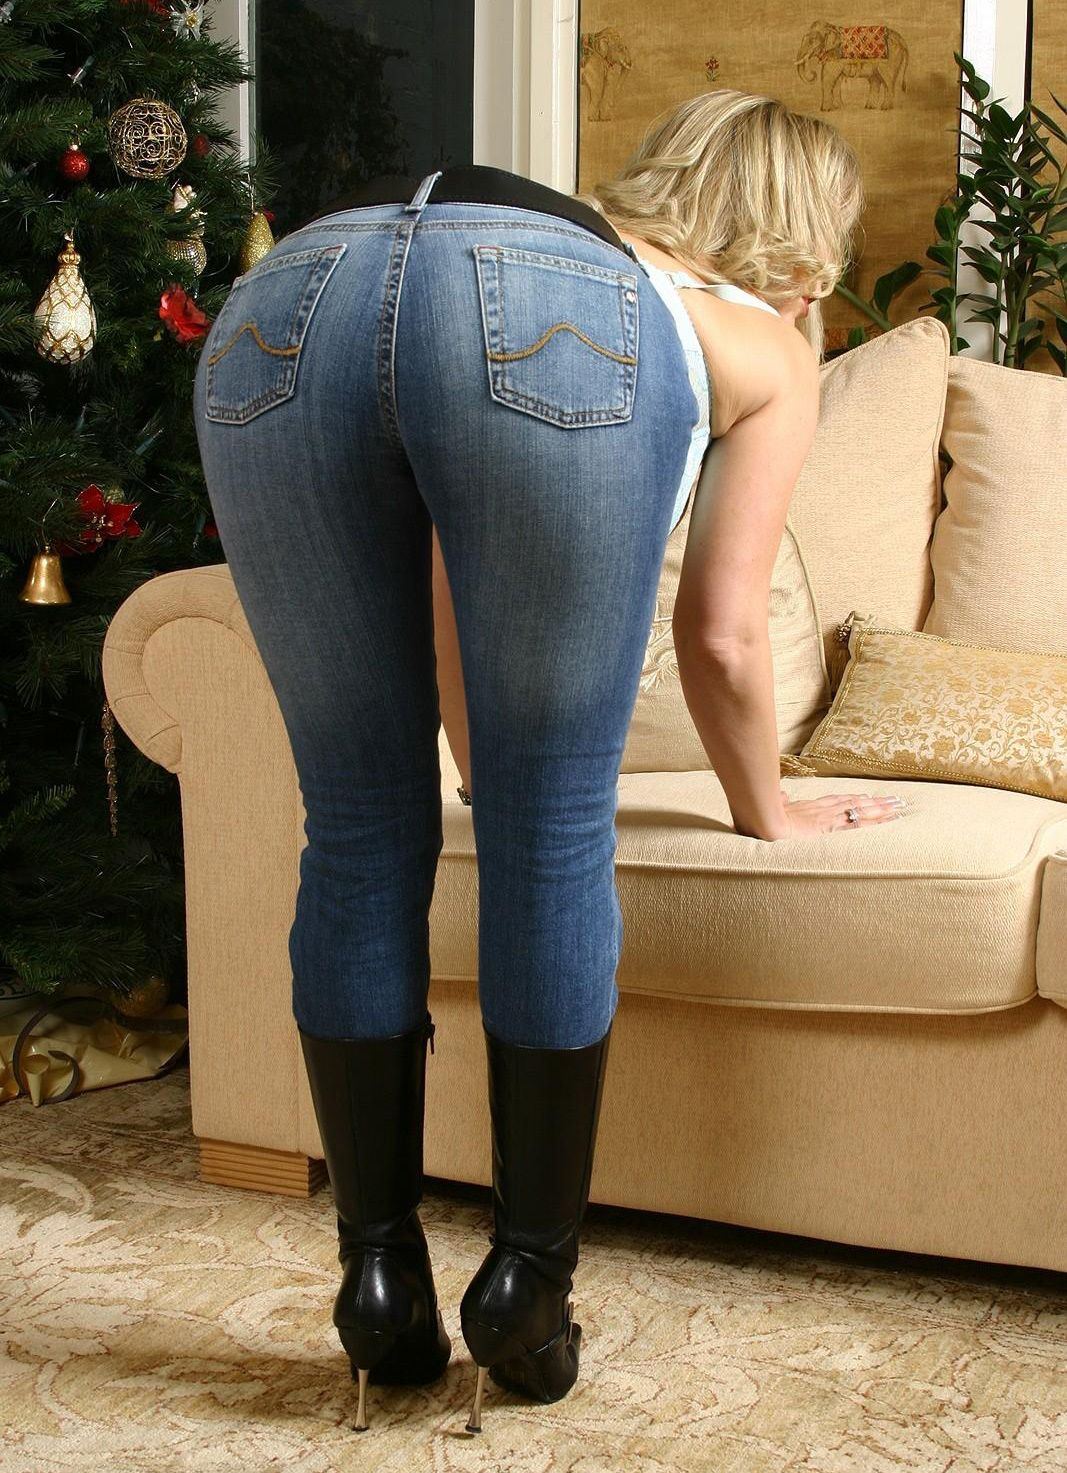 Girls bending over in jeans porn frankly